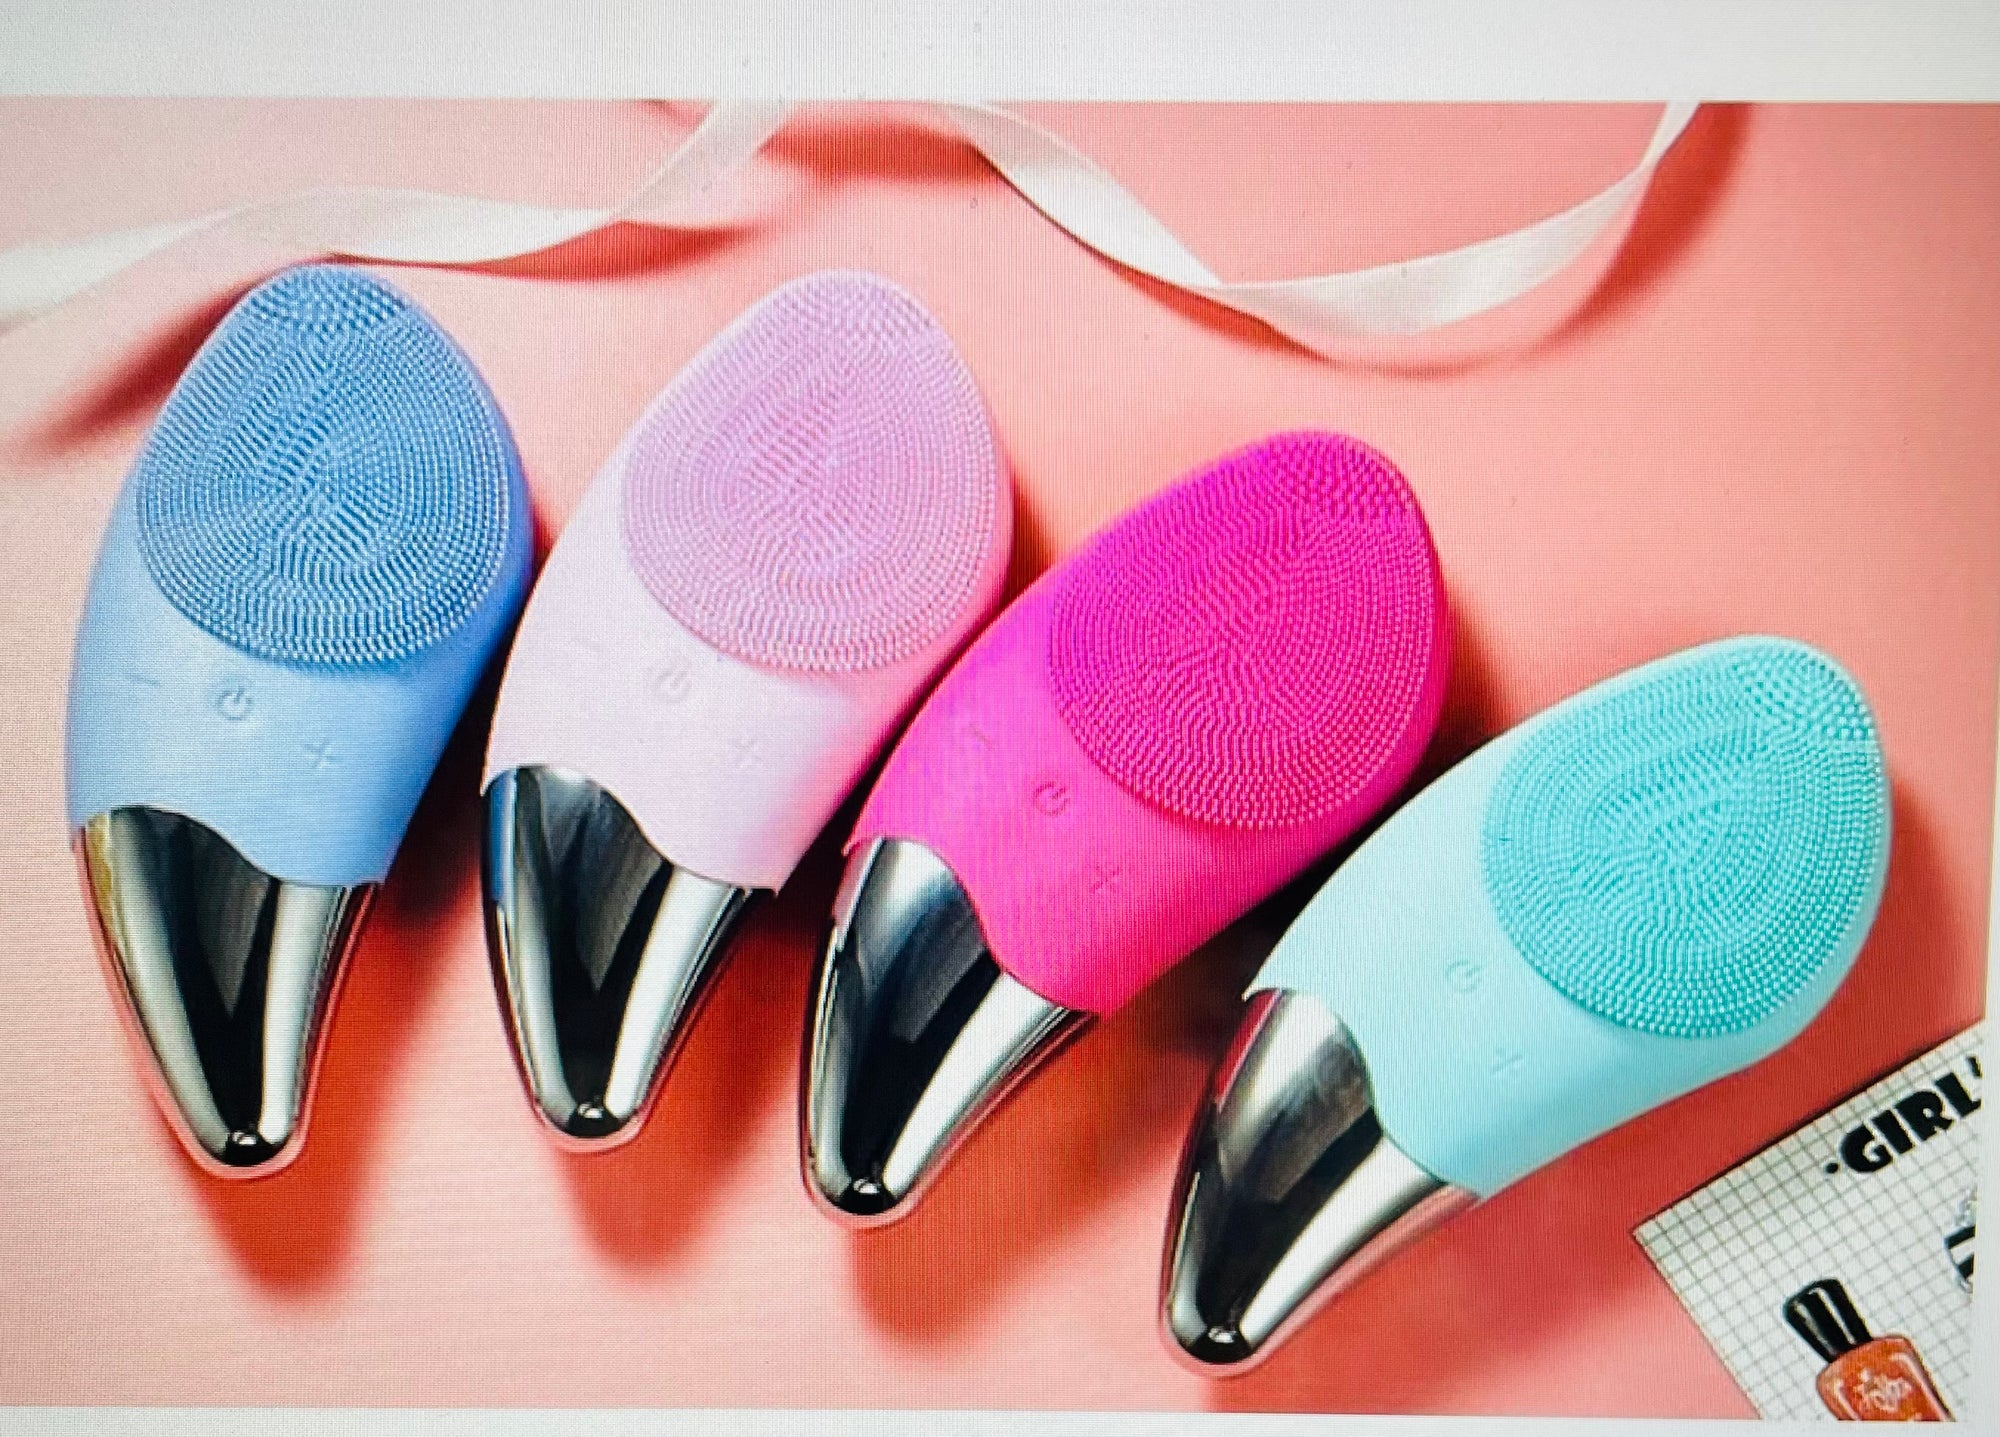 Ultra Sonic cleansing brush